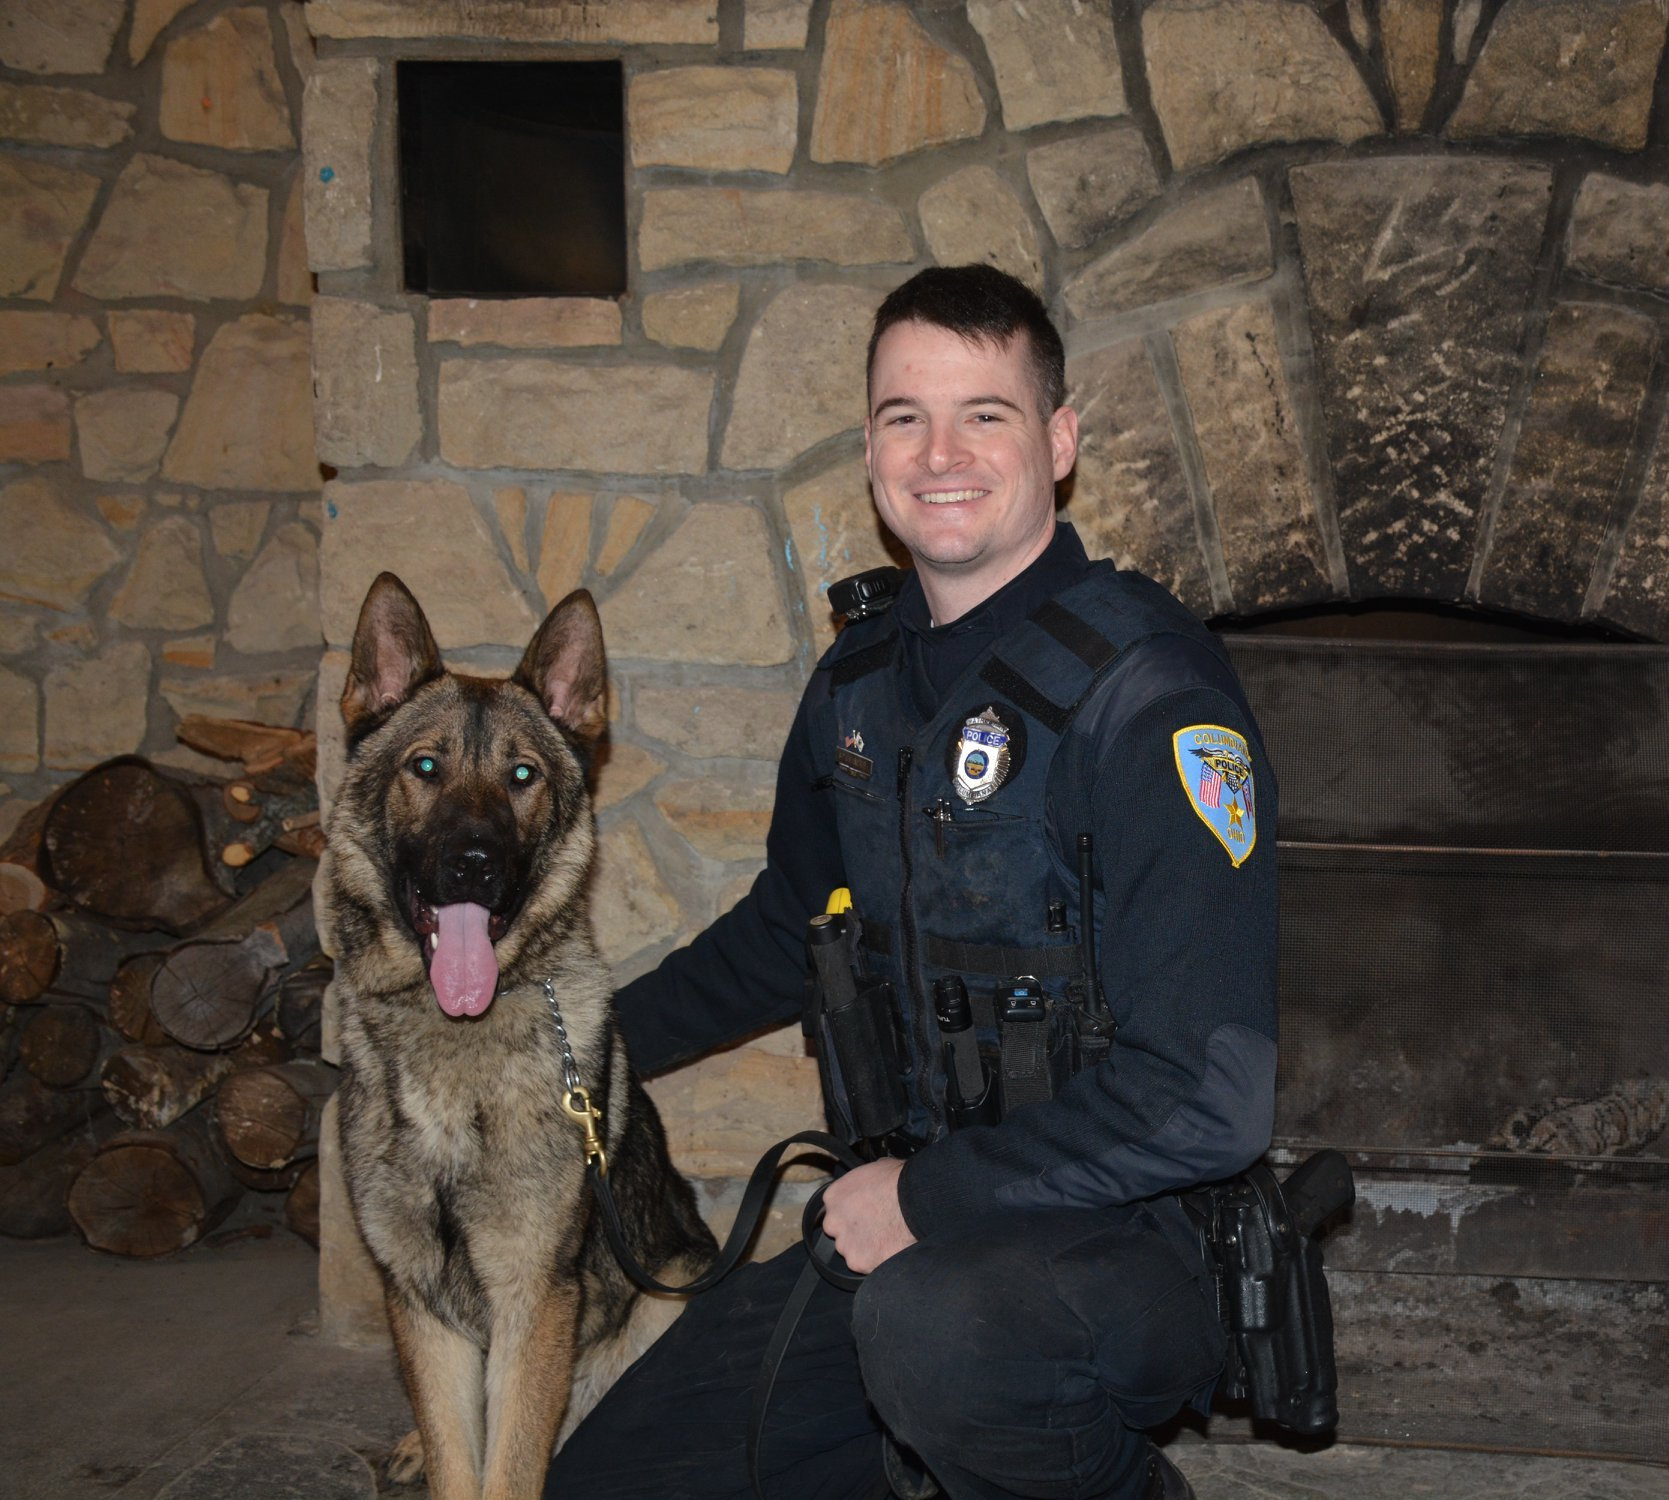 Funeral arrangements for fallen officer set, K9 recovering